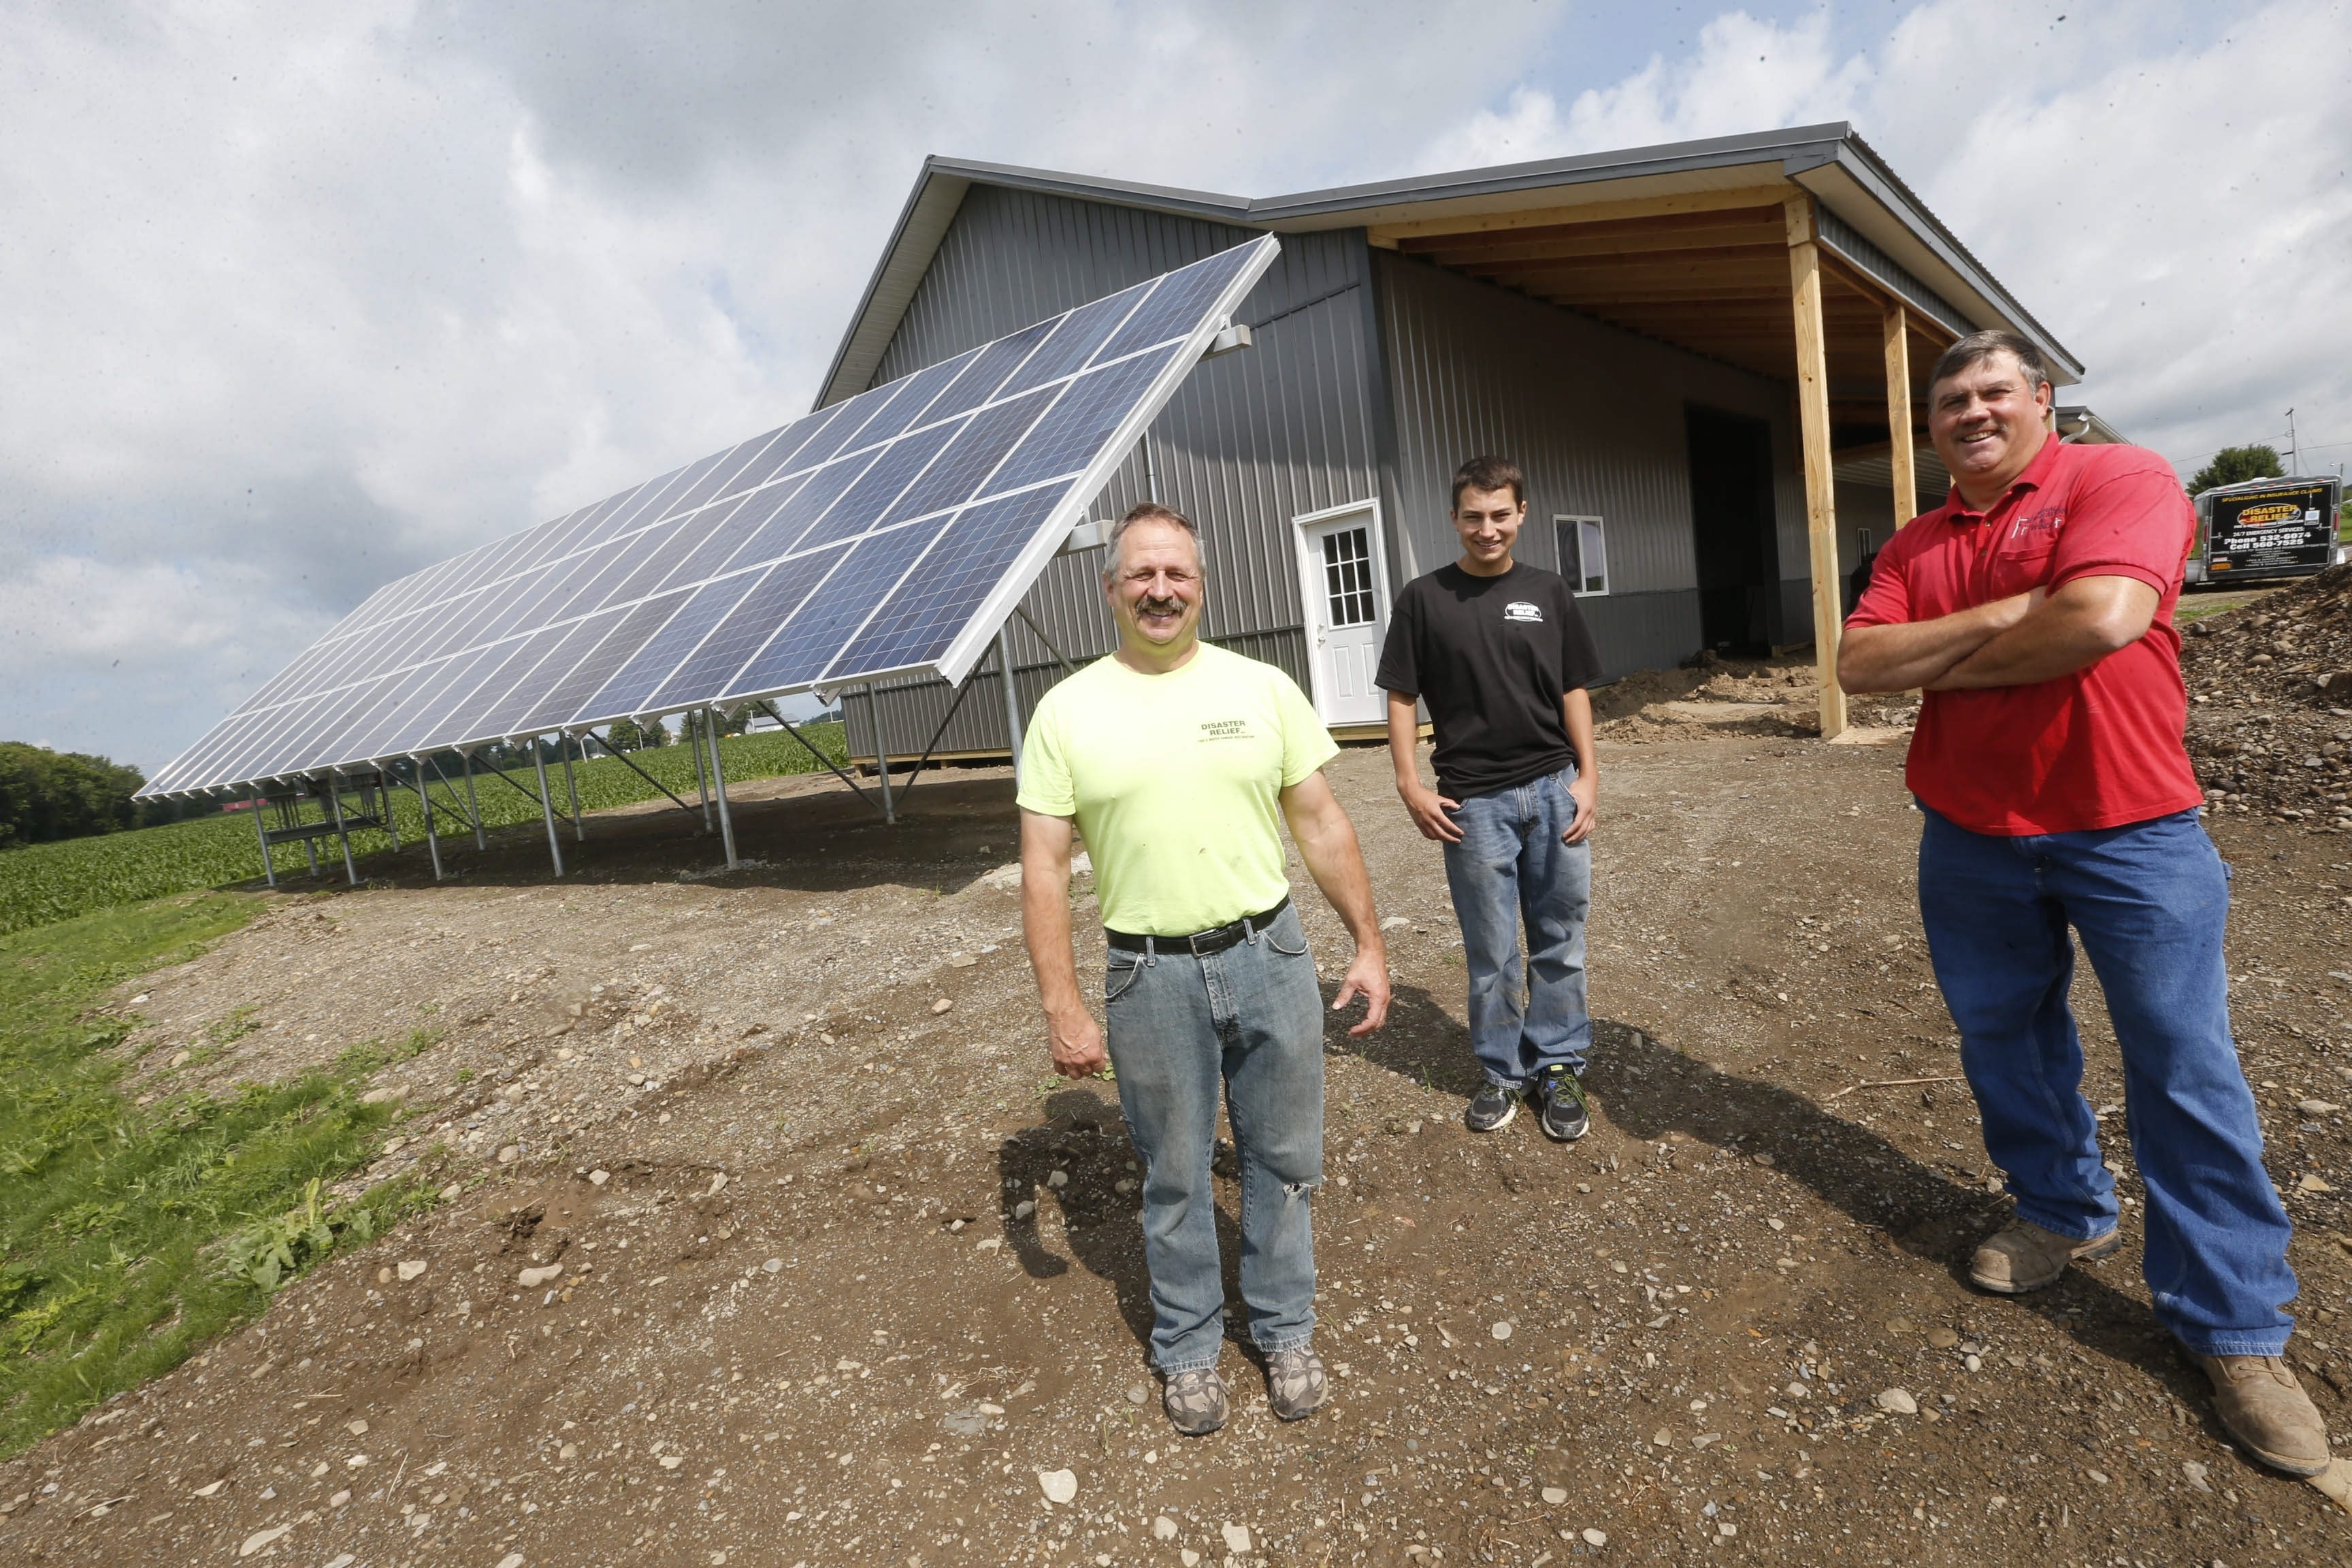 Bob Timmel with his son Dylan, 17, center, and Rodney Weaver, with Rural Generation and Wind Inc., near the panels that power Timmel's electric needs.